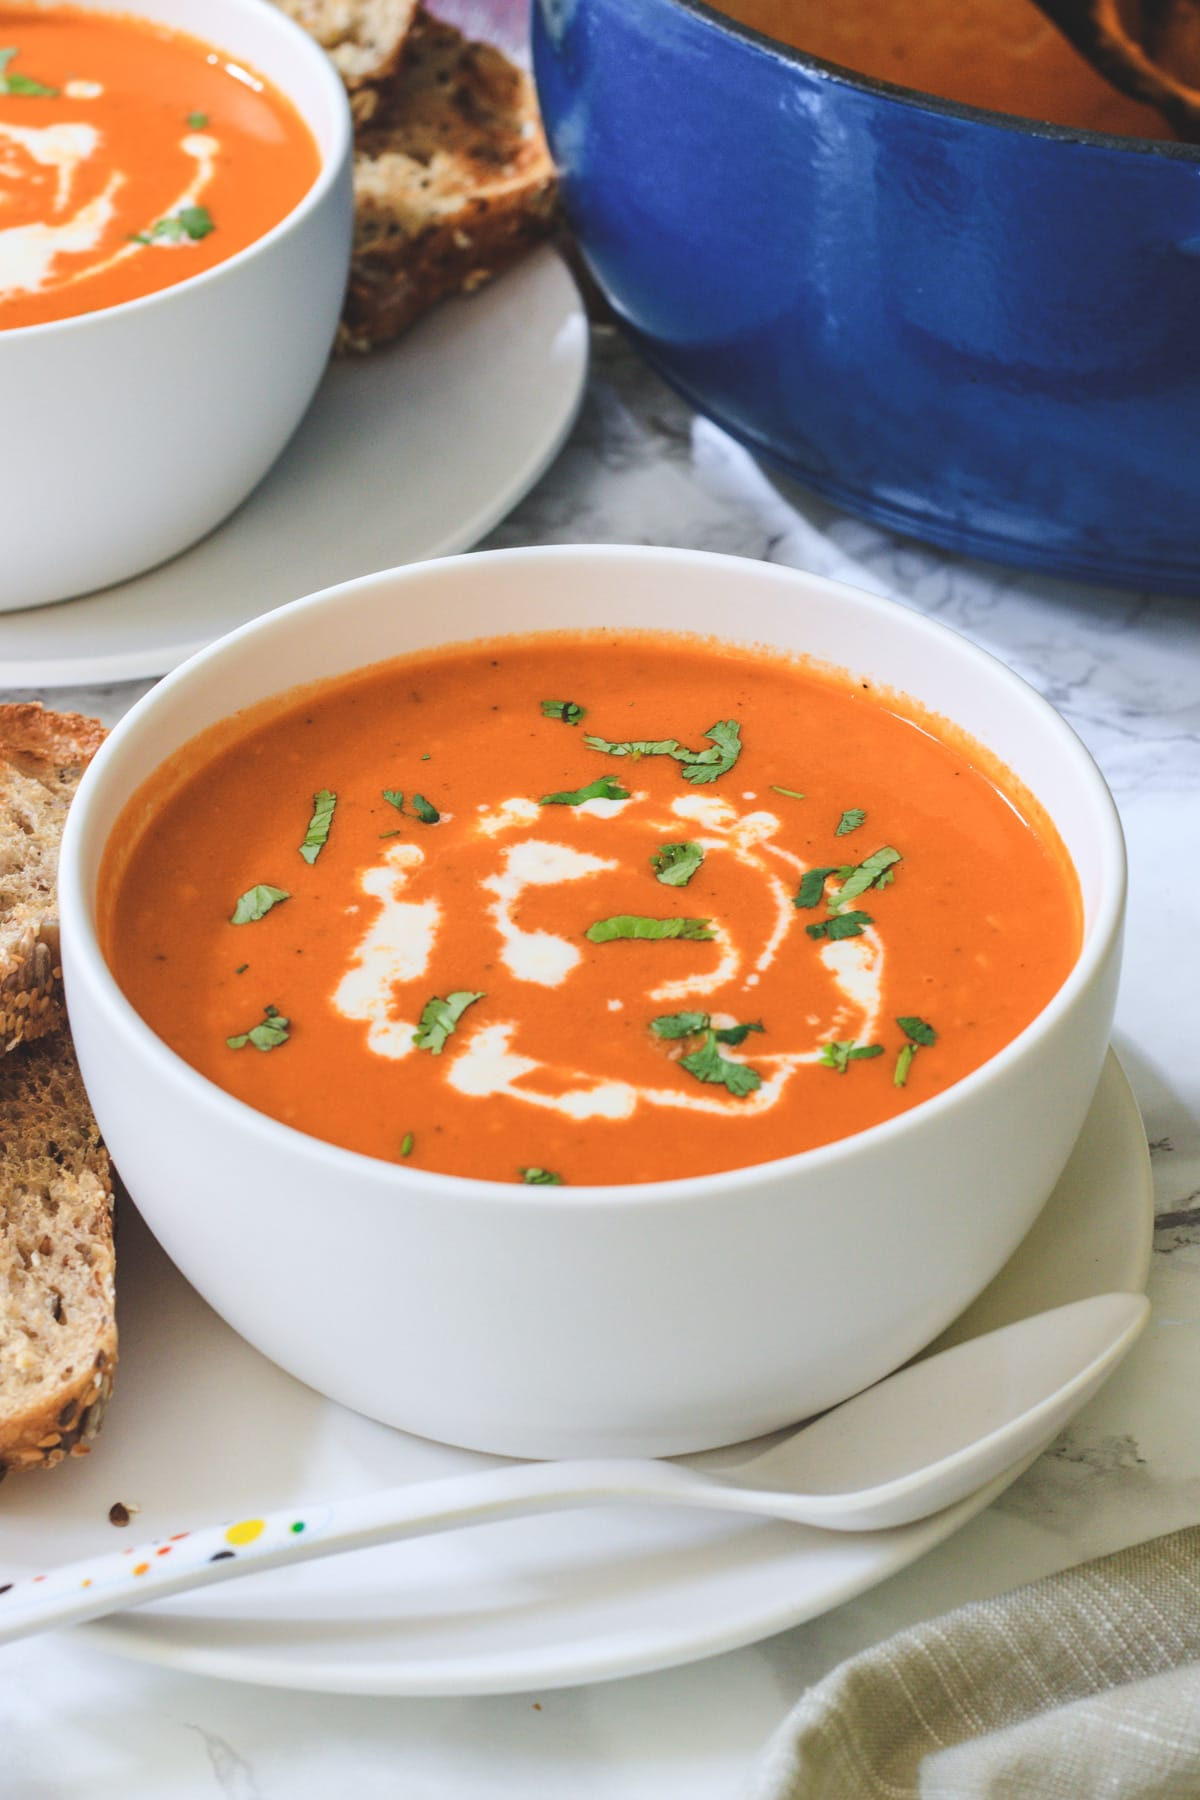 Roasted red pepper gouda soup in a bowl with side of bread.